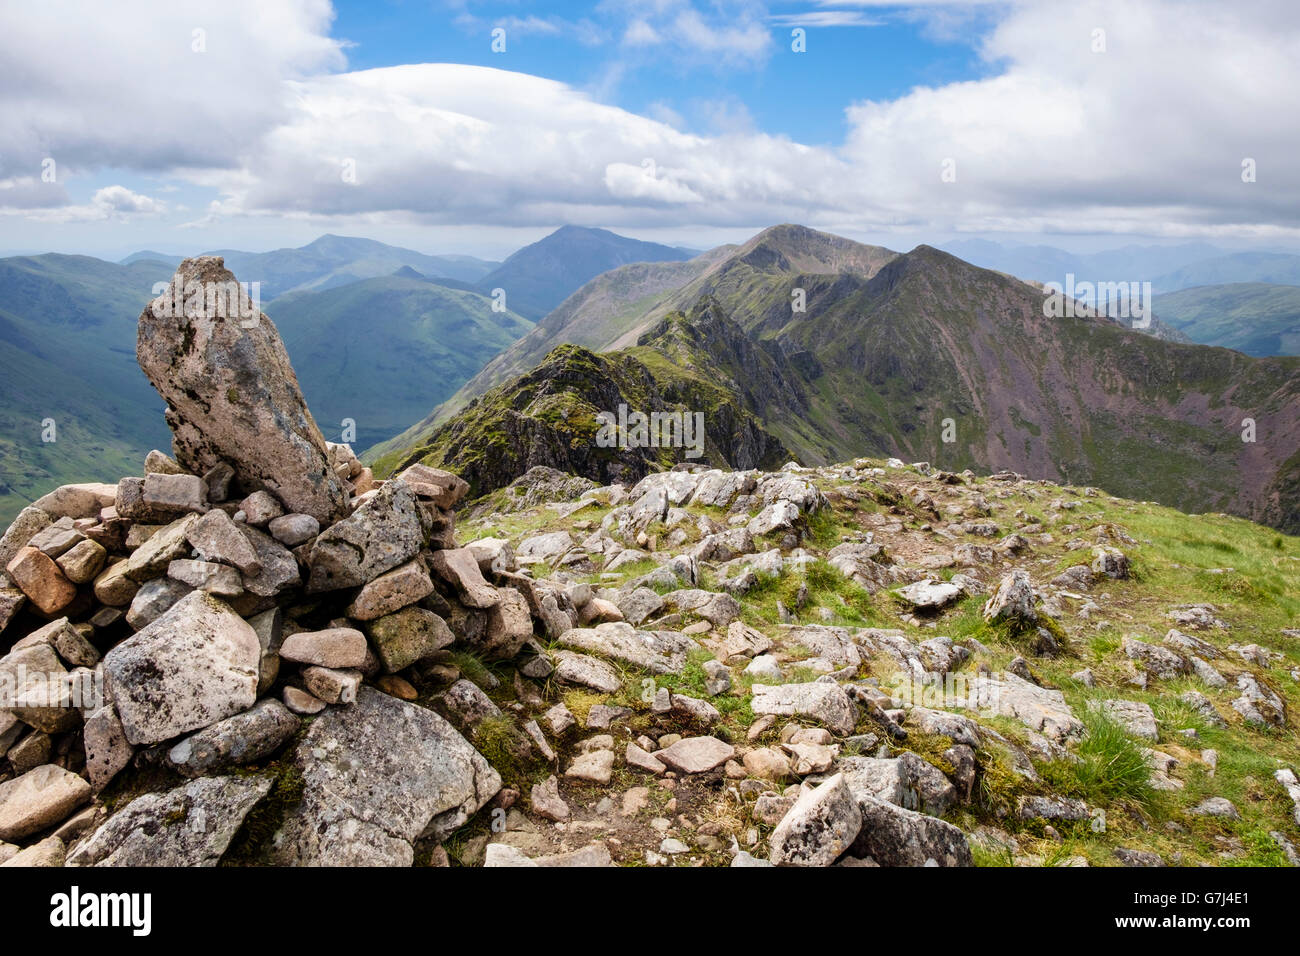 View west on Aonach Eagach (Notched Ridge) seen from Meall Dearg mountain summit cairn in summer in Scottish Highlands. - Stock Image